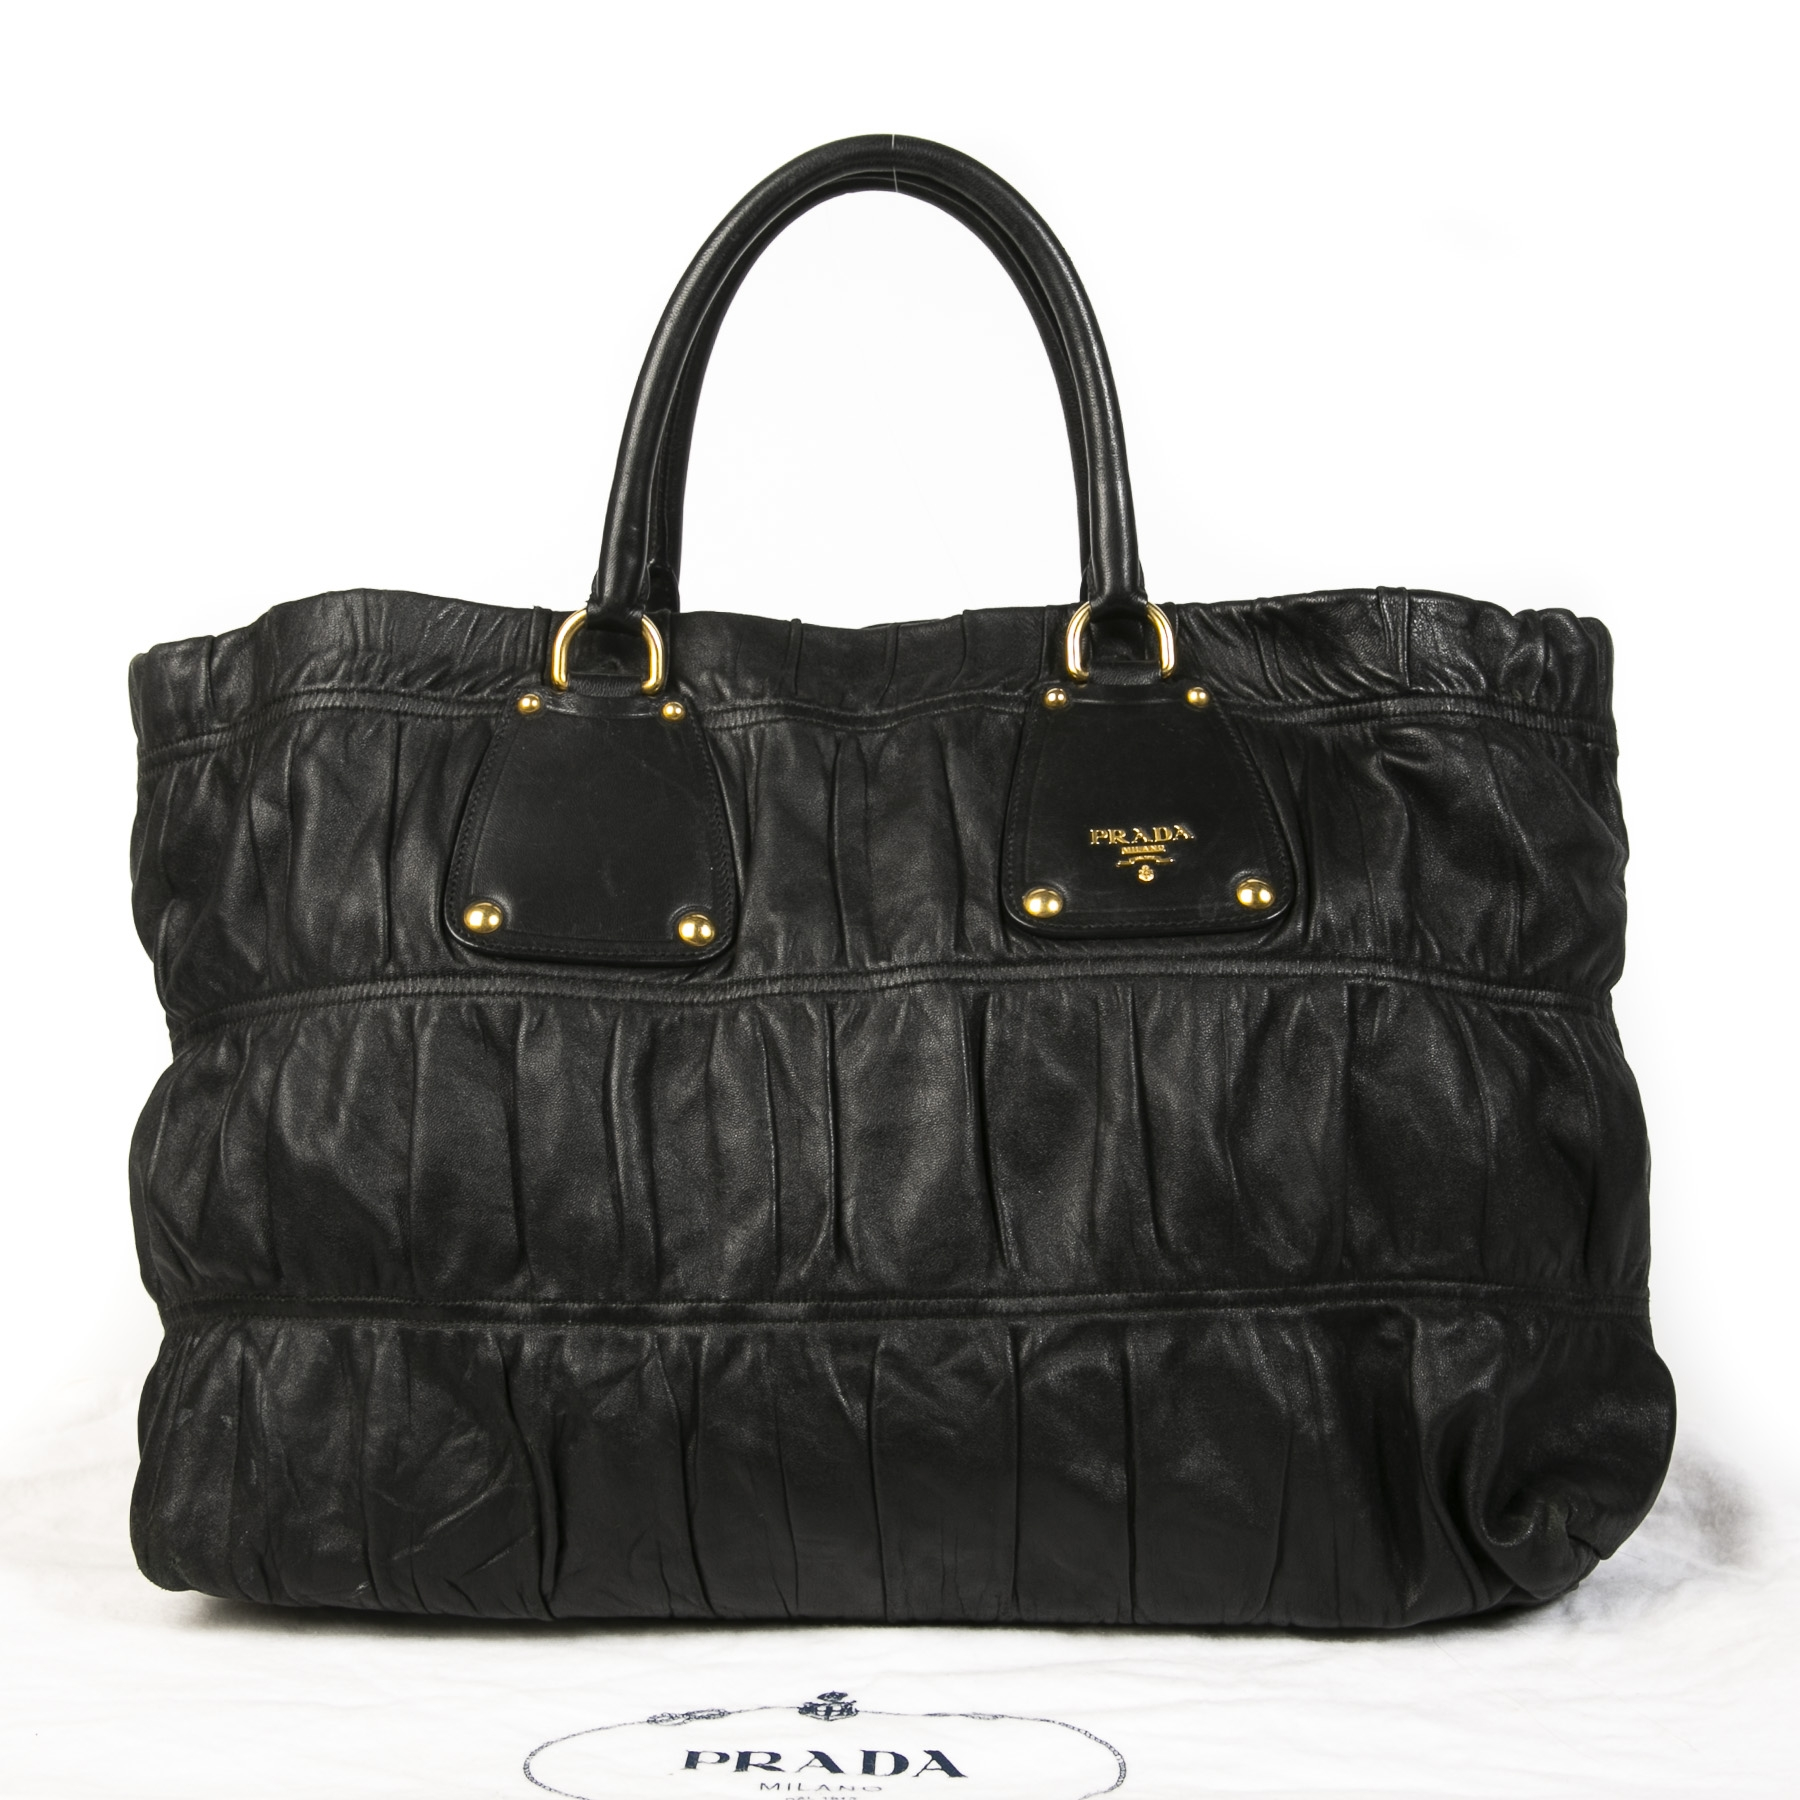 Buy your authentic Prada Black Matelassé Shoulder Bag for the best price at Labellov secondhand luxury